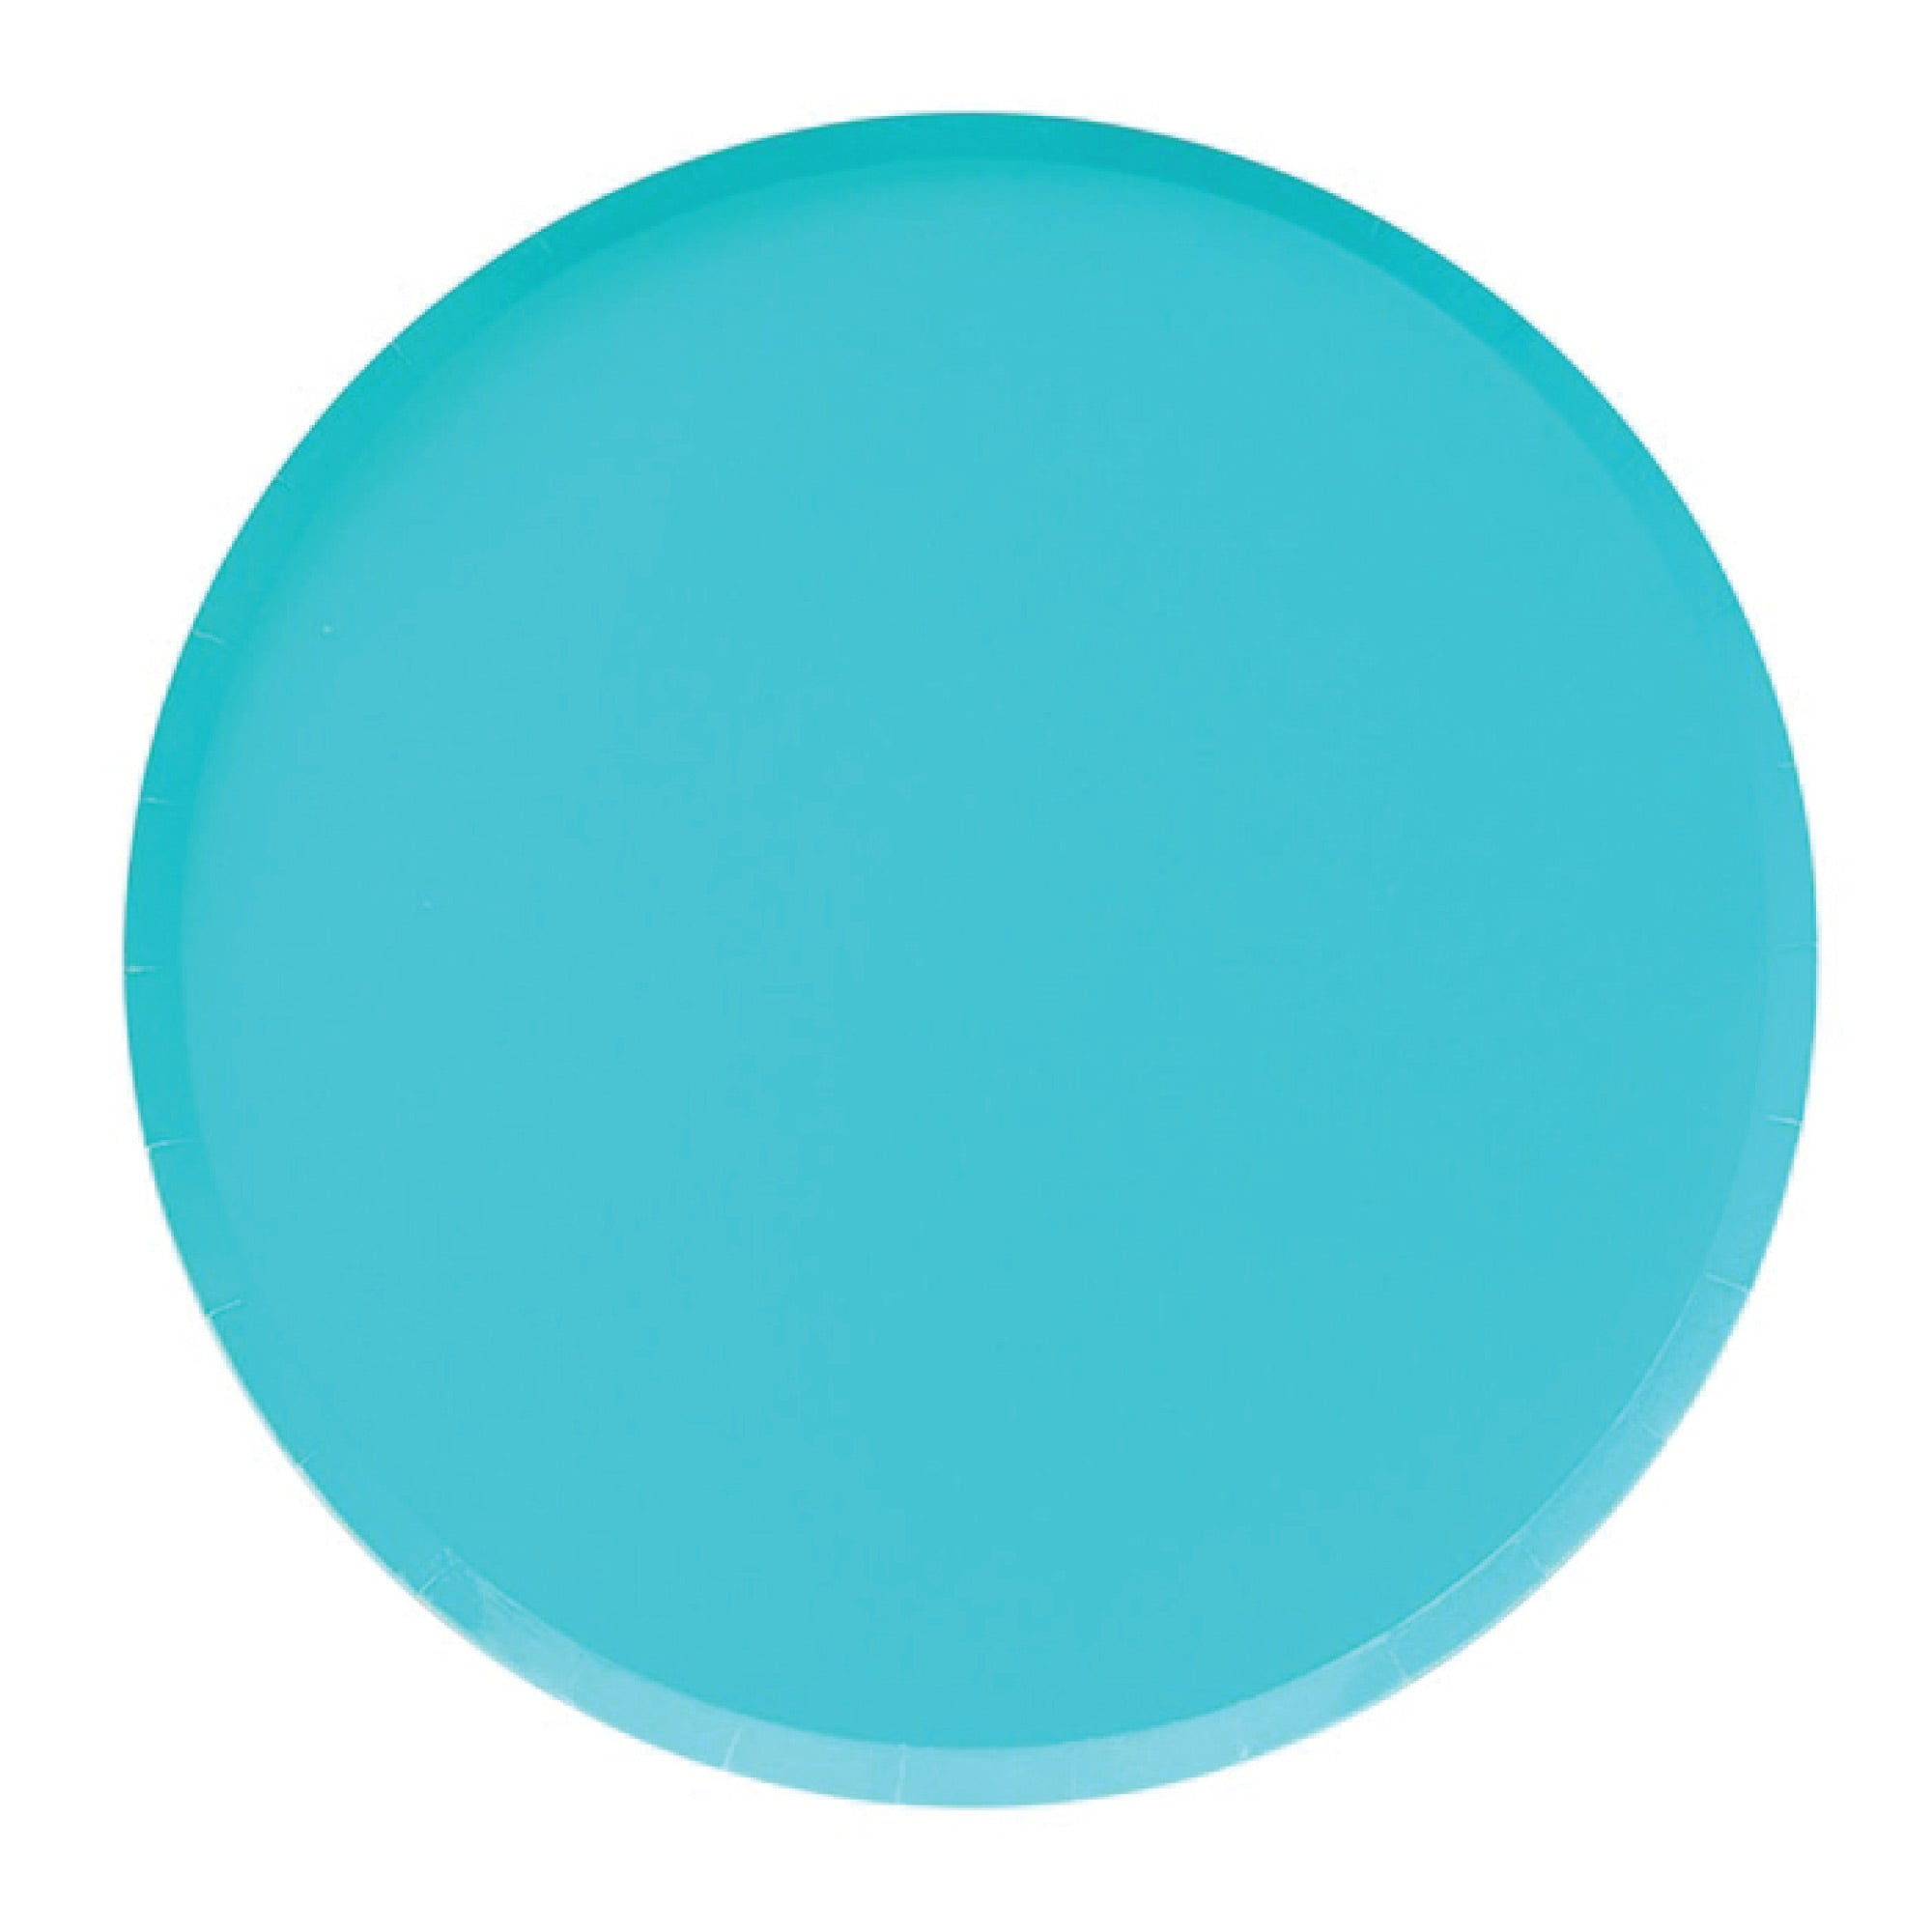 Cyan Blue Lunch Plates 8ct | The Party Darling